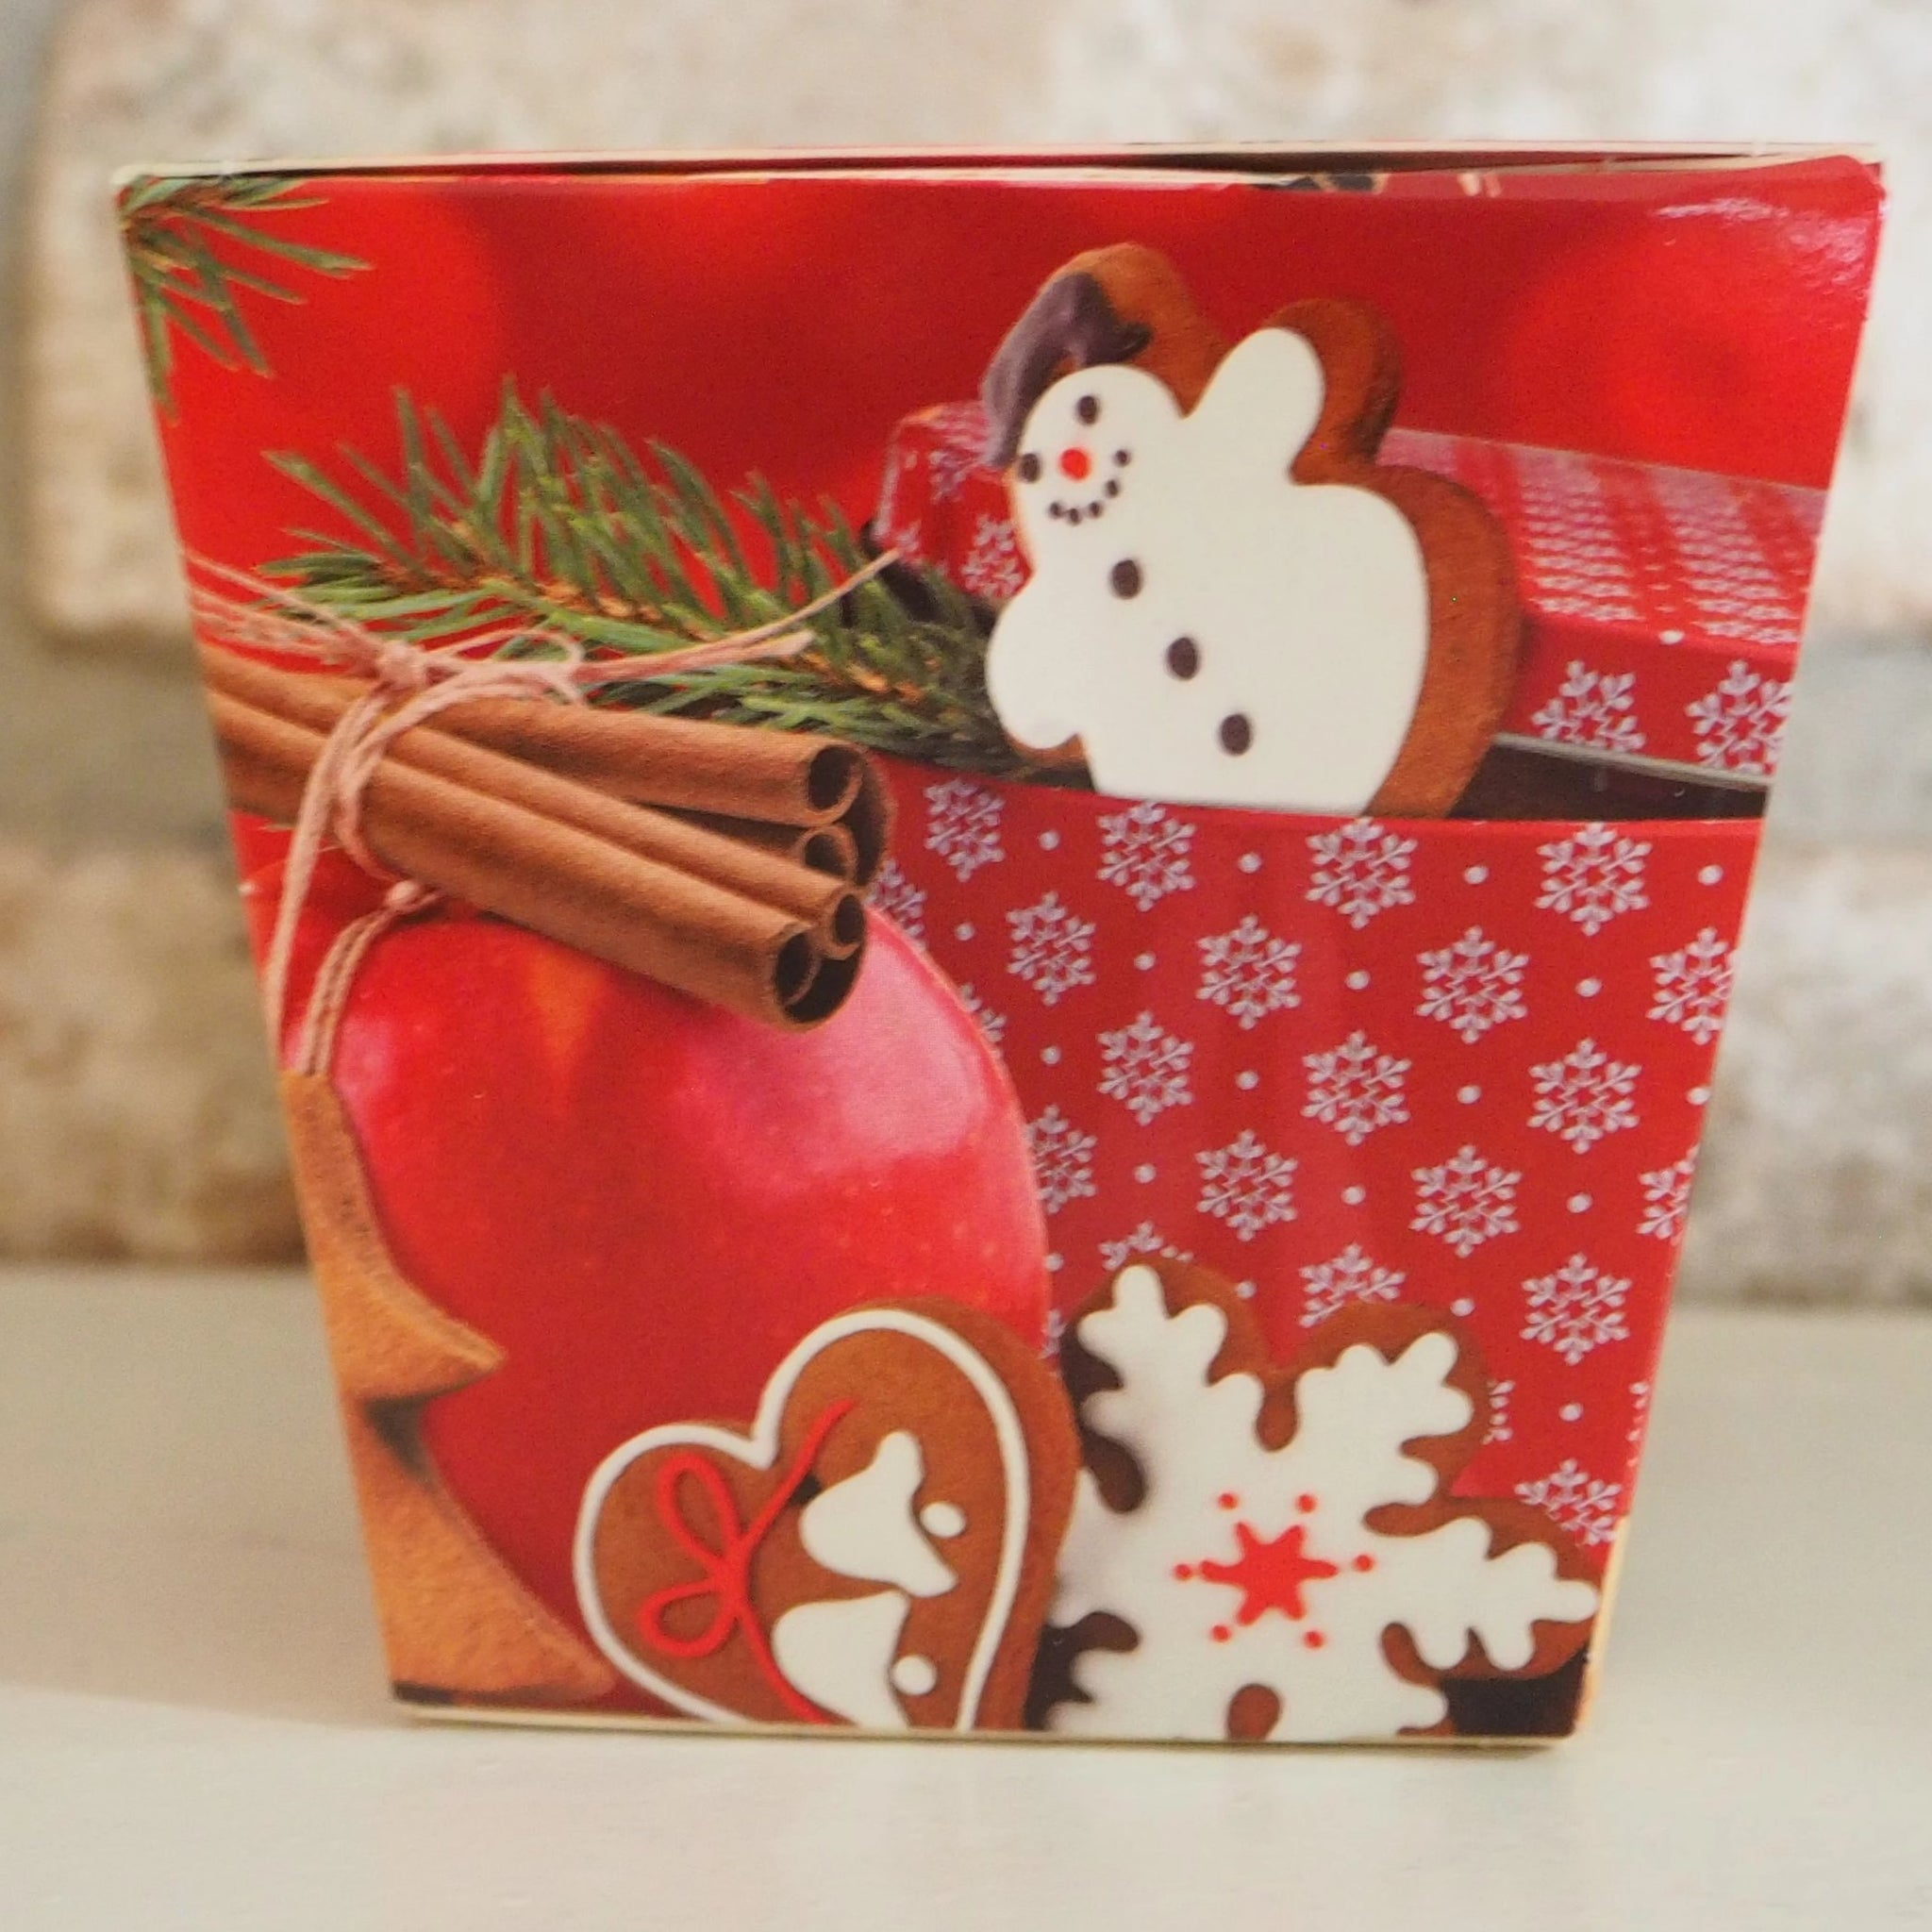 Christmas Scented Candle - Gingerbread with Apple and Cinnamon